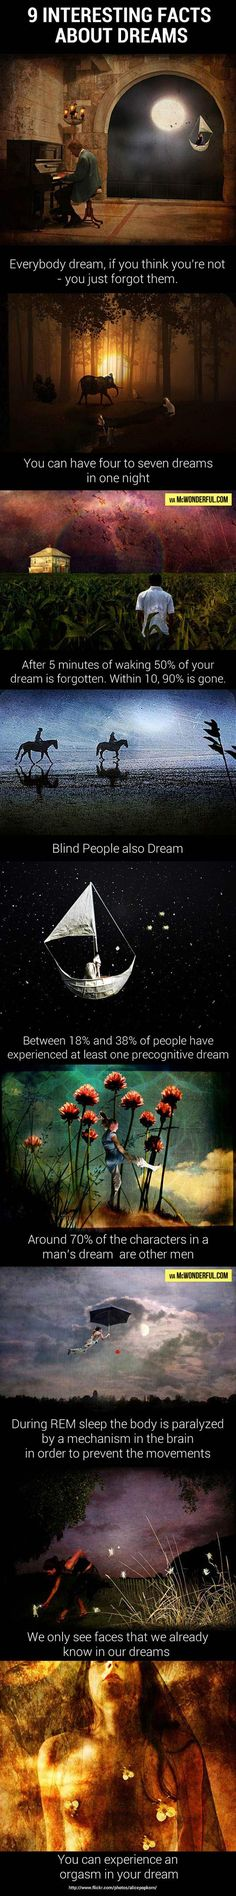 9 interesting facts about dreams...